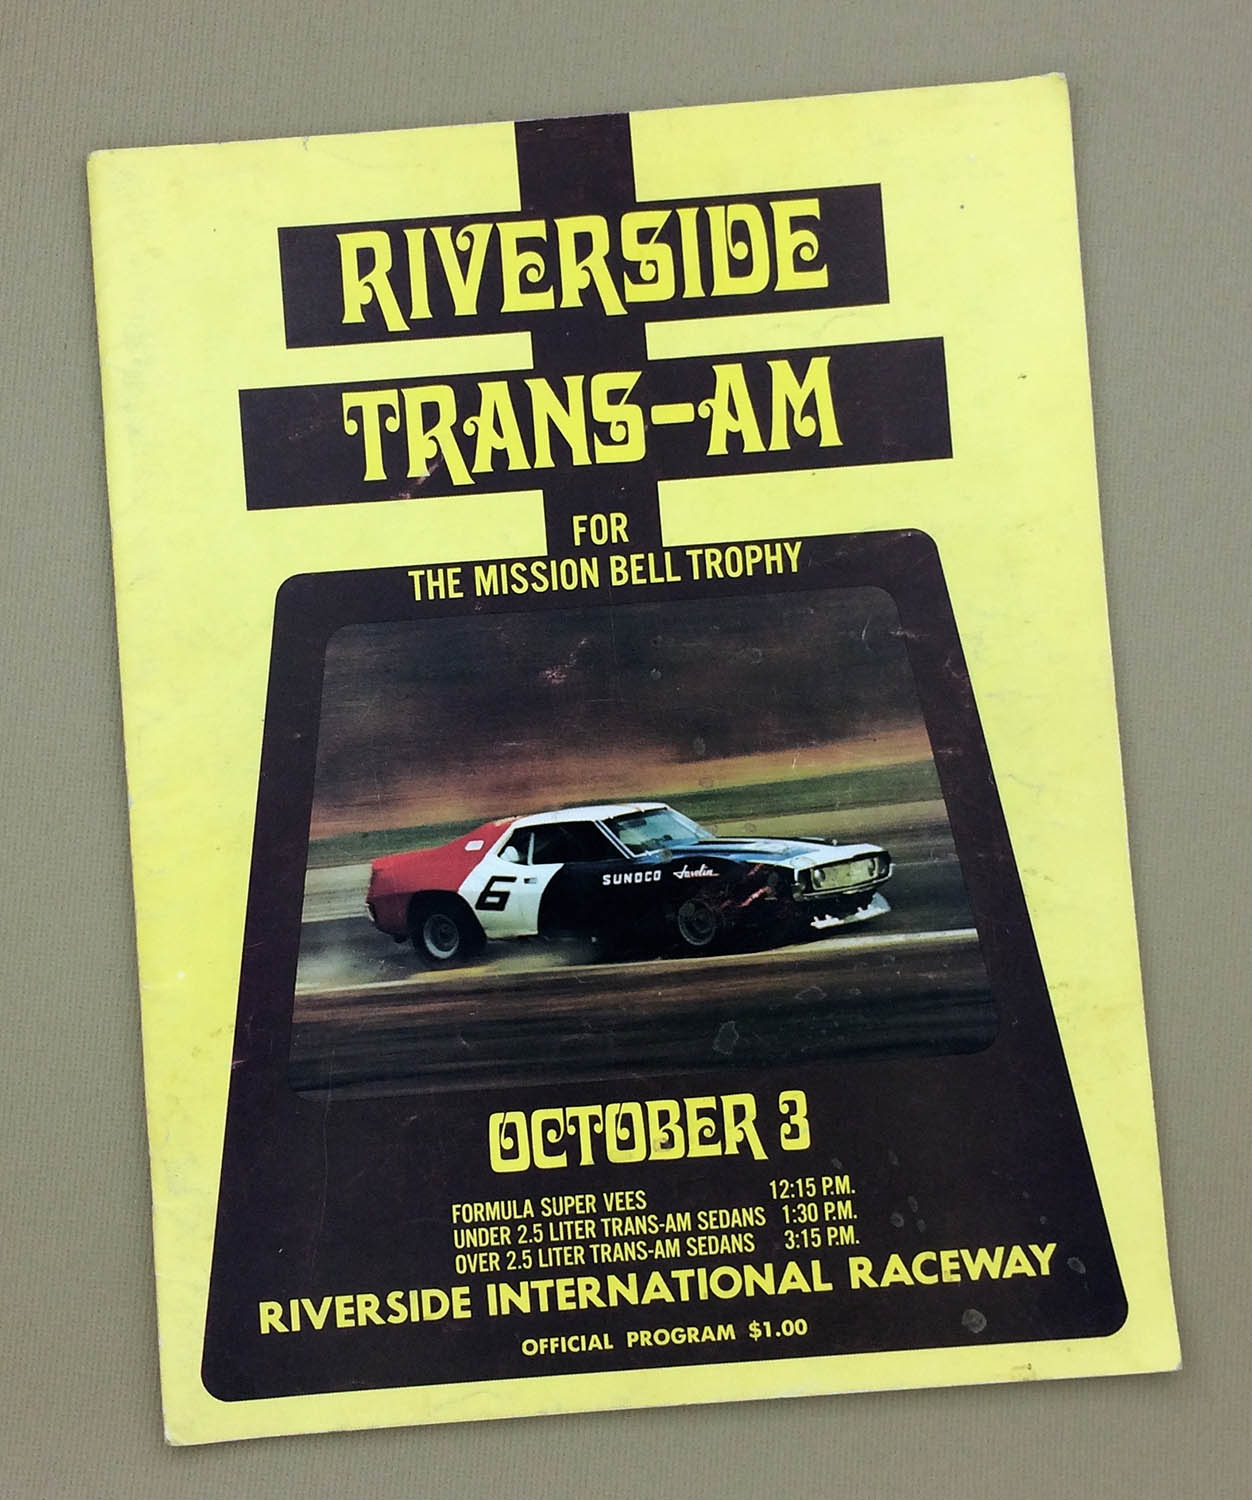 1971 Riverside Trans-Am program